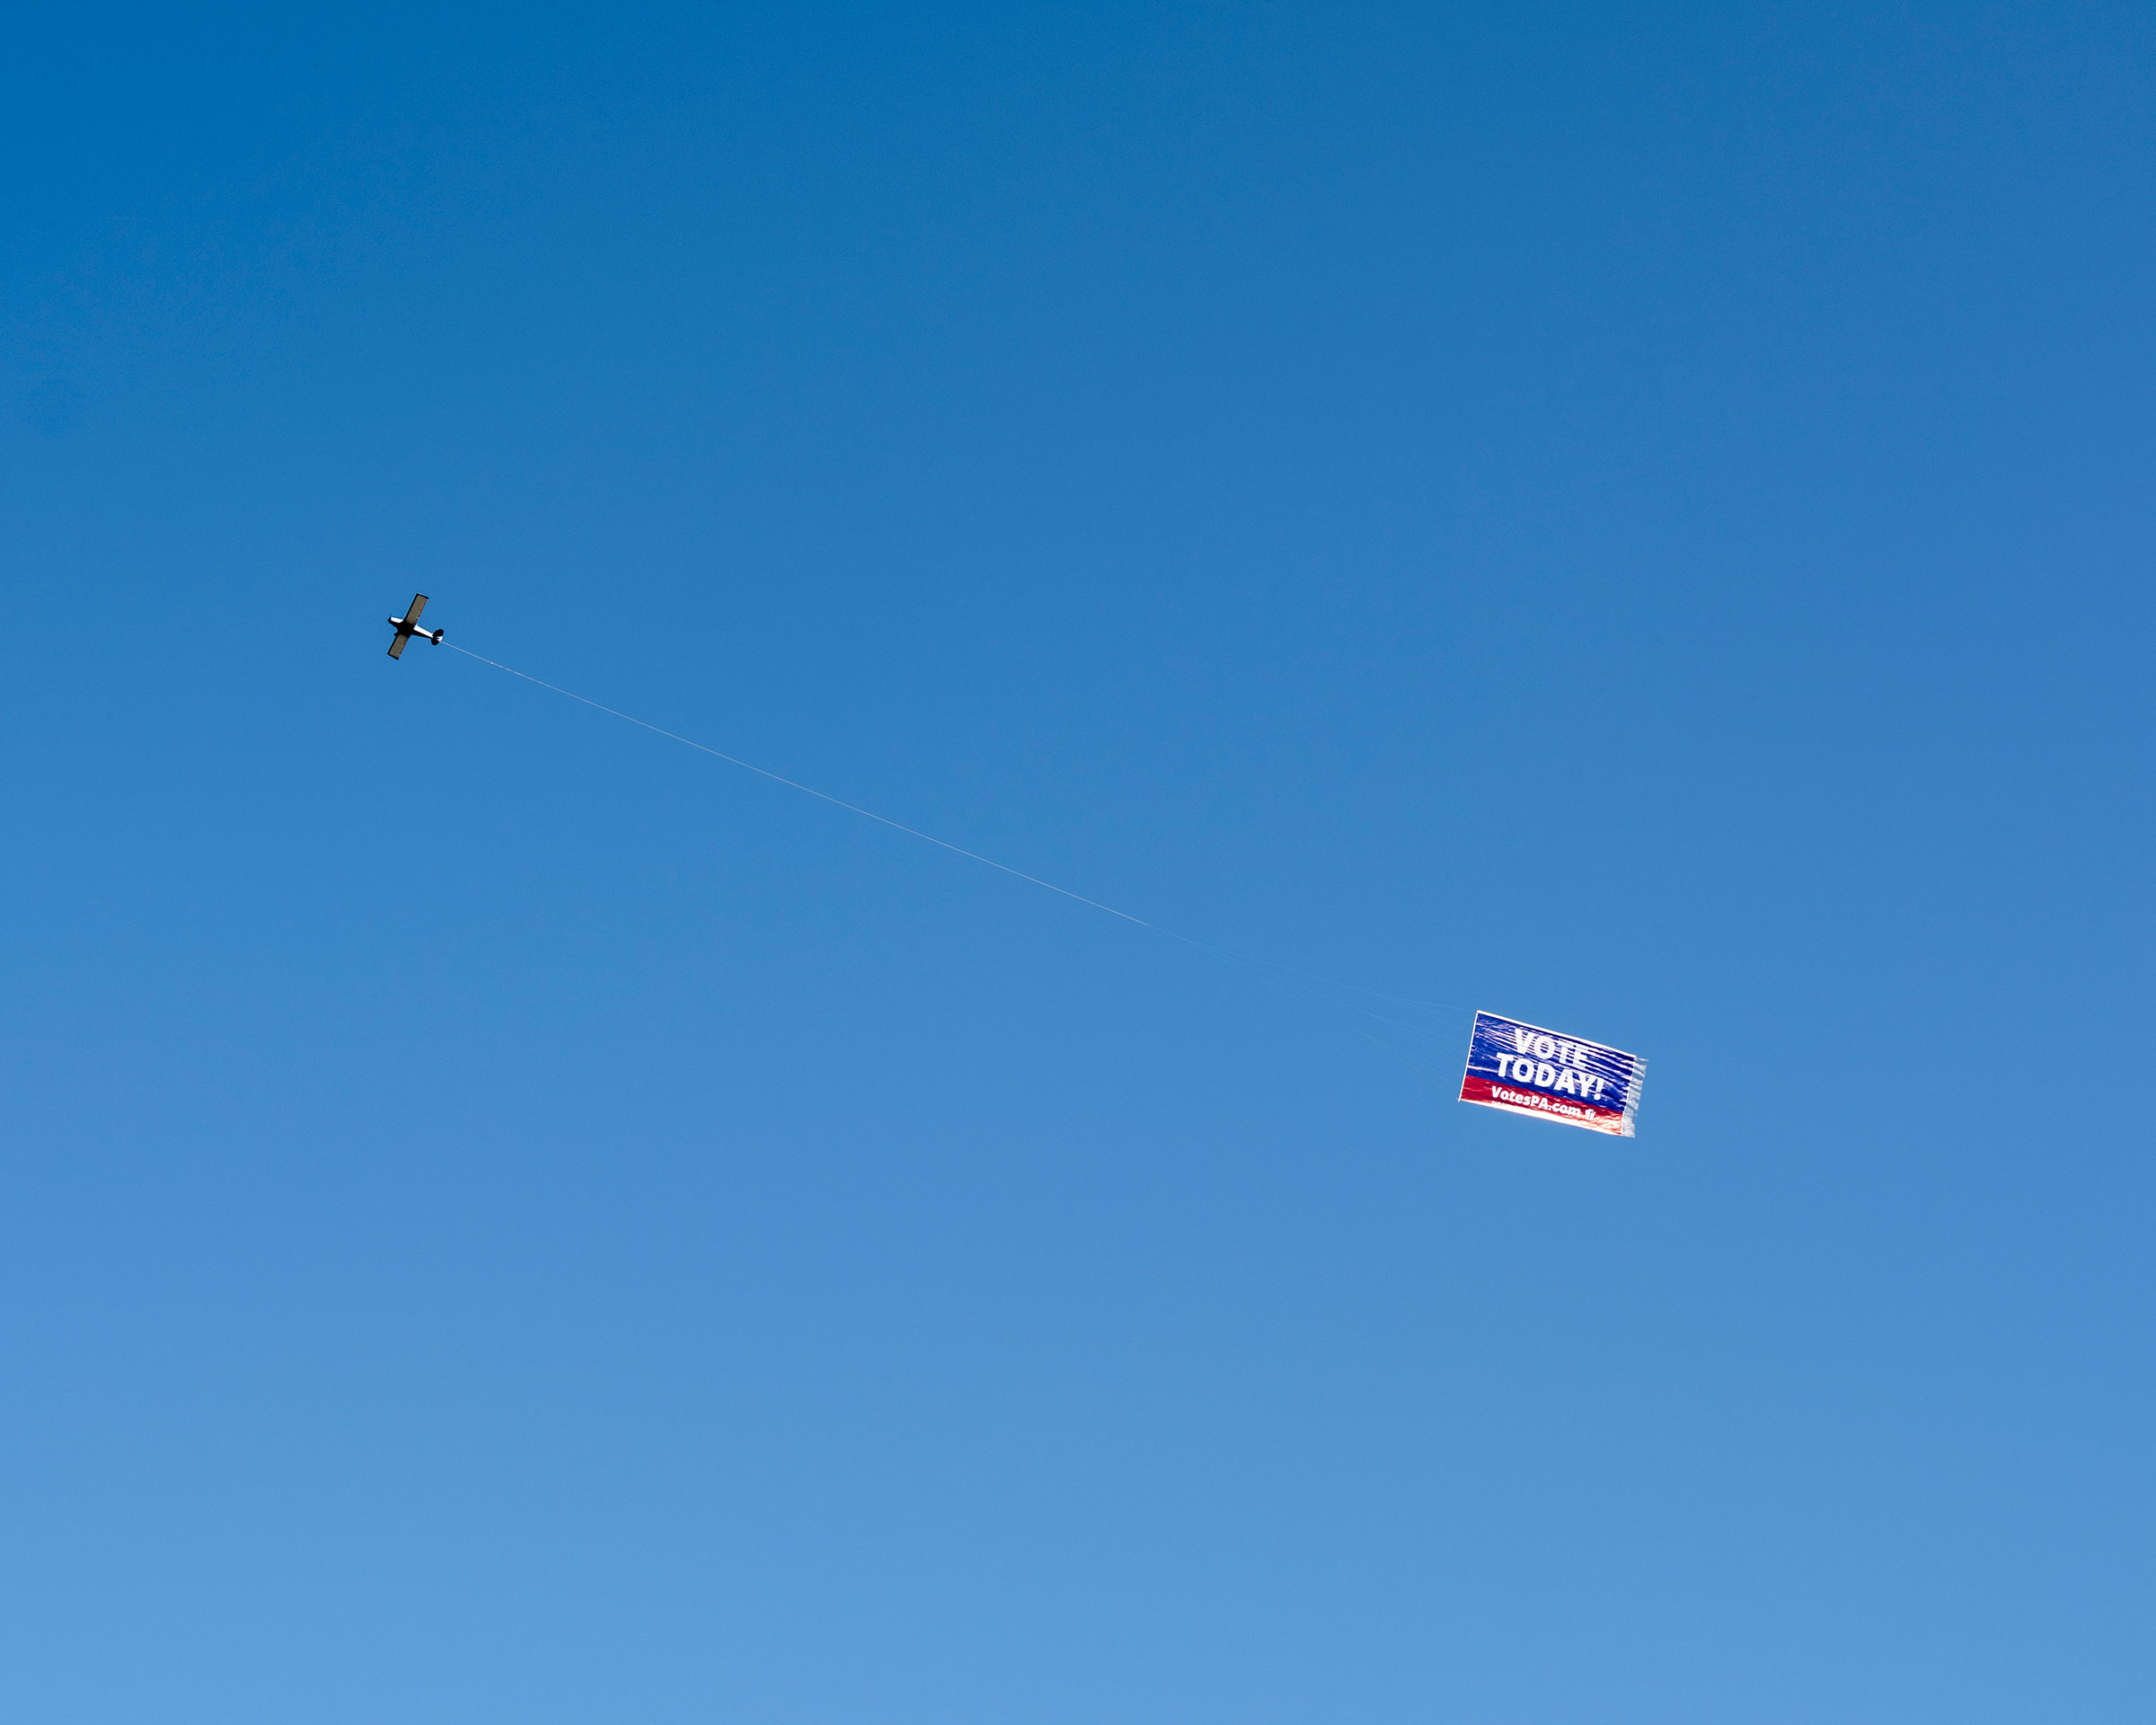 An airplane flies over Erie, Penn. to encourage people to vote.